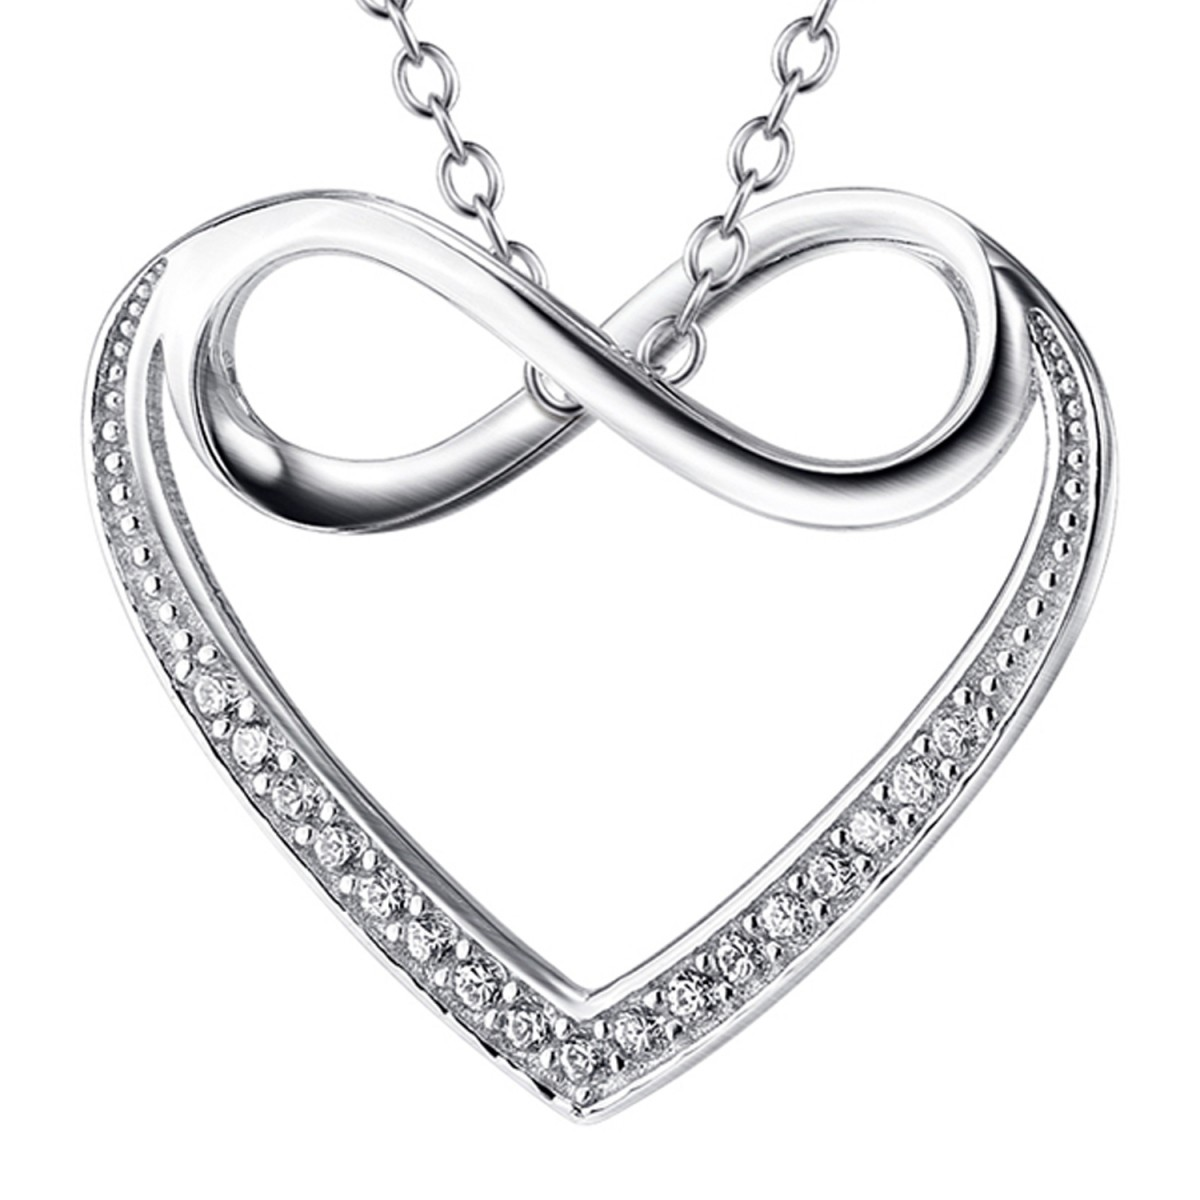 necklace co infinitypendant sign sterling pendants necklaces silver in mini pendant jewelry infinity tiffany ed